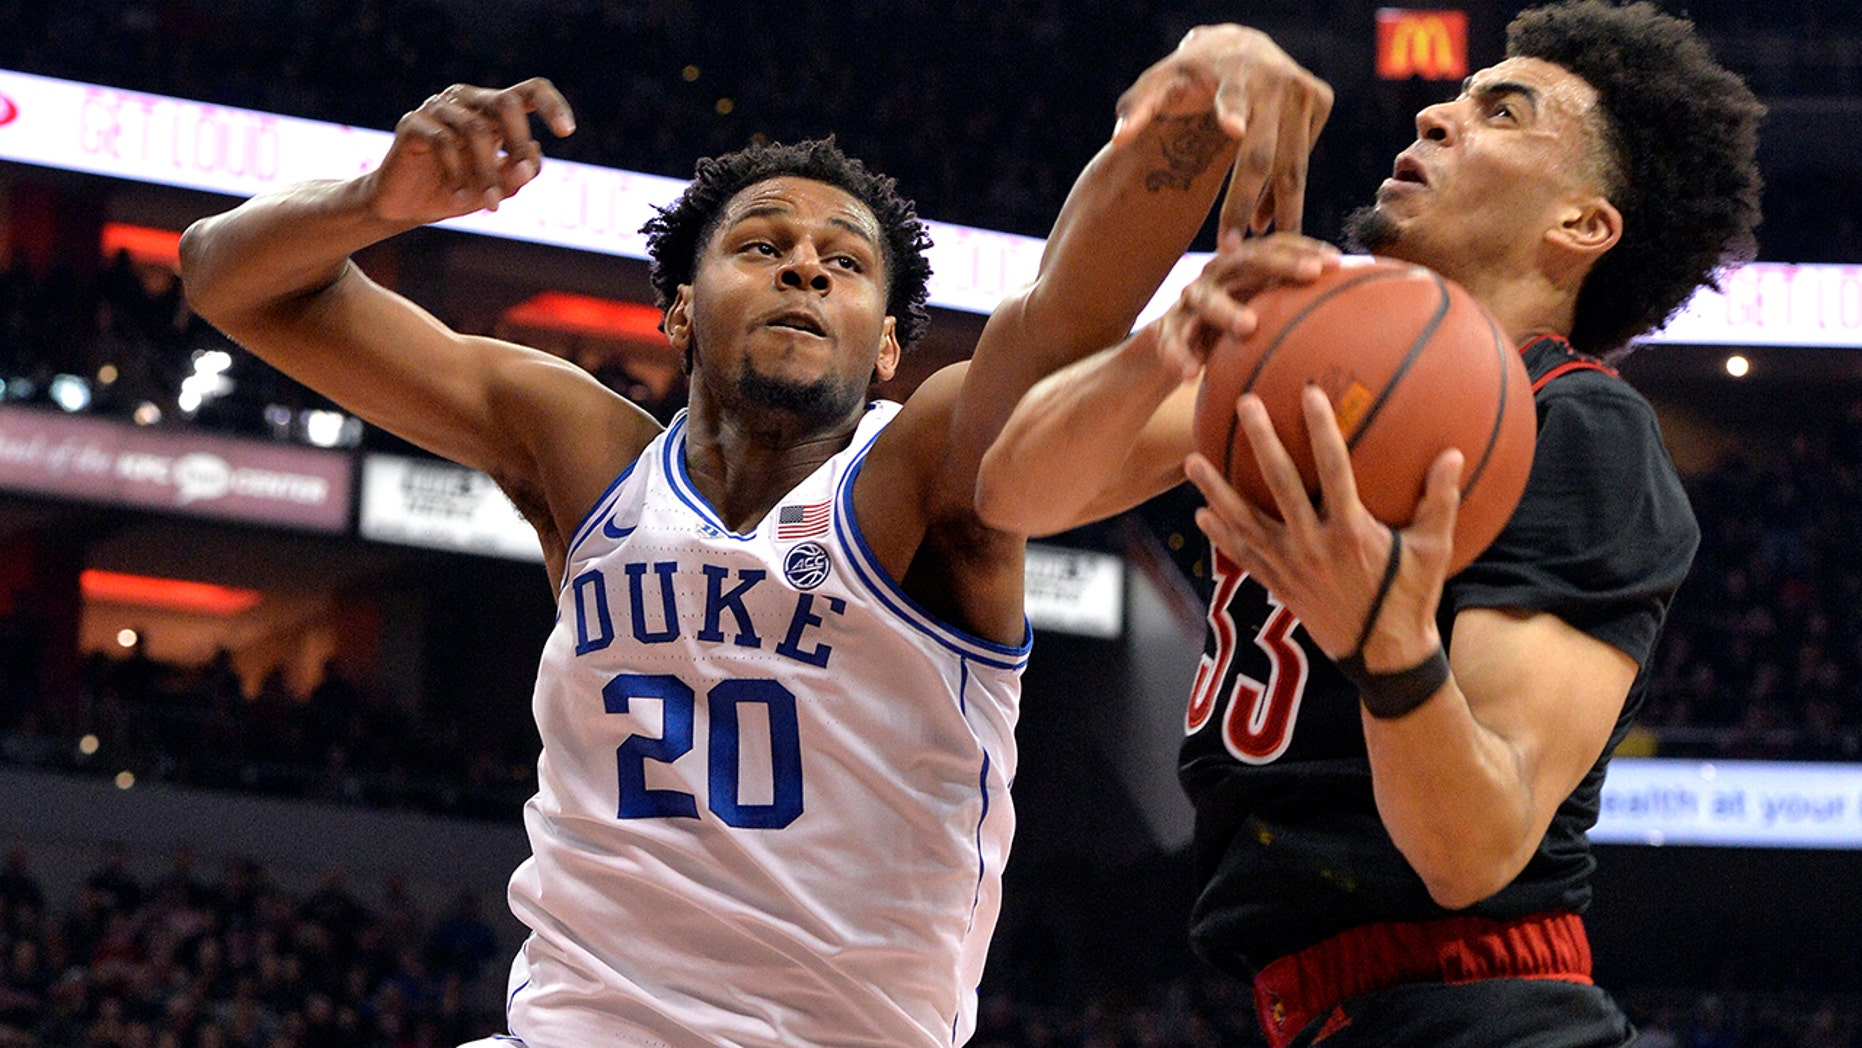 Duke center Marques Bolden (20) and Louisville striker Jordan Nwora (33) compete for a rebound during the first half of an NCAA college basketball game in Louisville, Kentucky, on Tuesday, February 12, 2019. ( Associated Press)